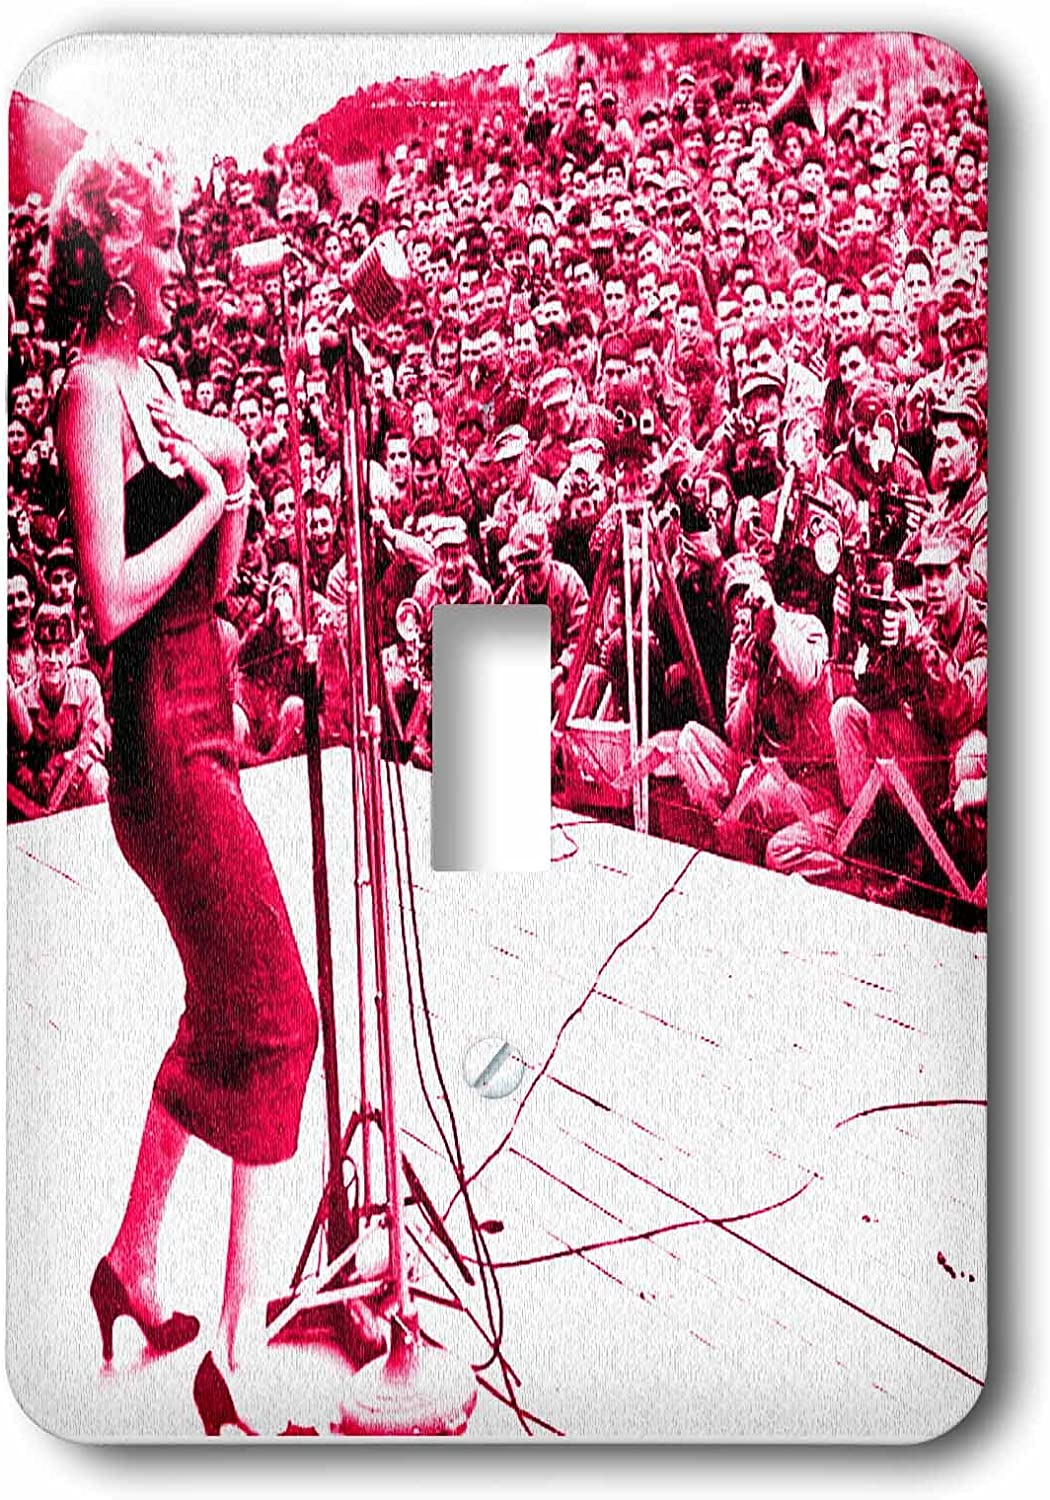 3dRose lsp/_233930/_1 Marilyn Monroe sings to the troops in Korea 1954 Single Toggle Switch